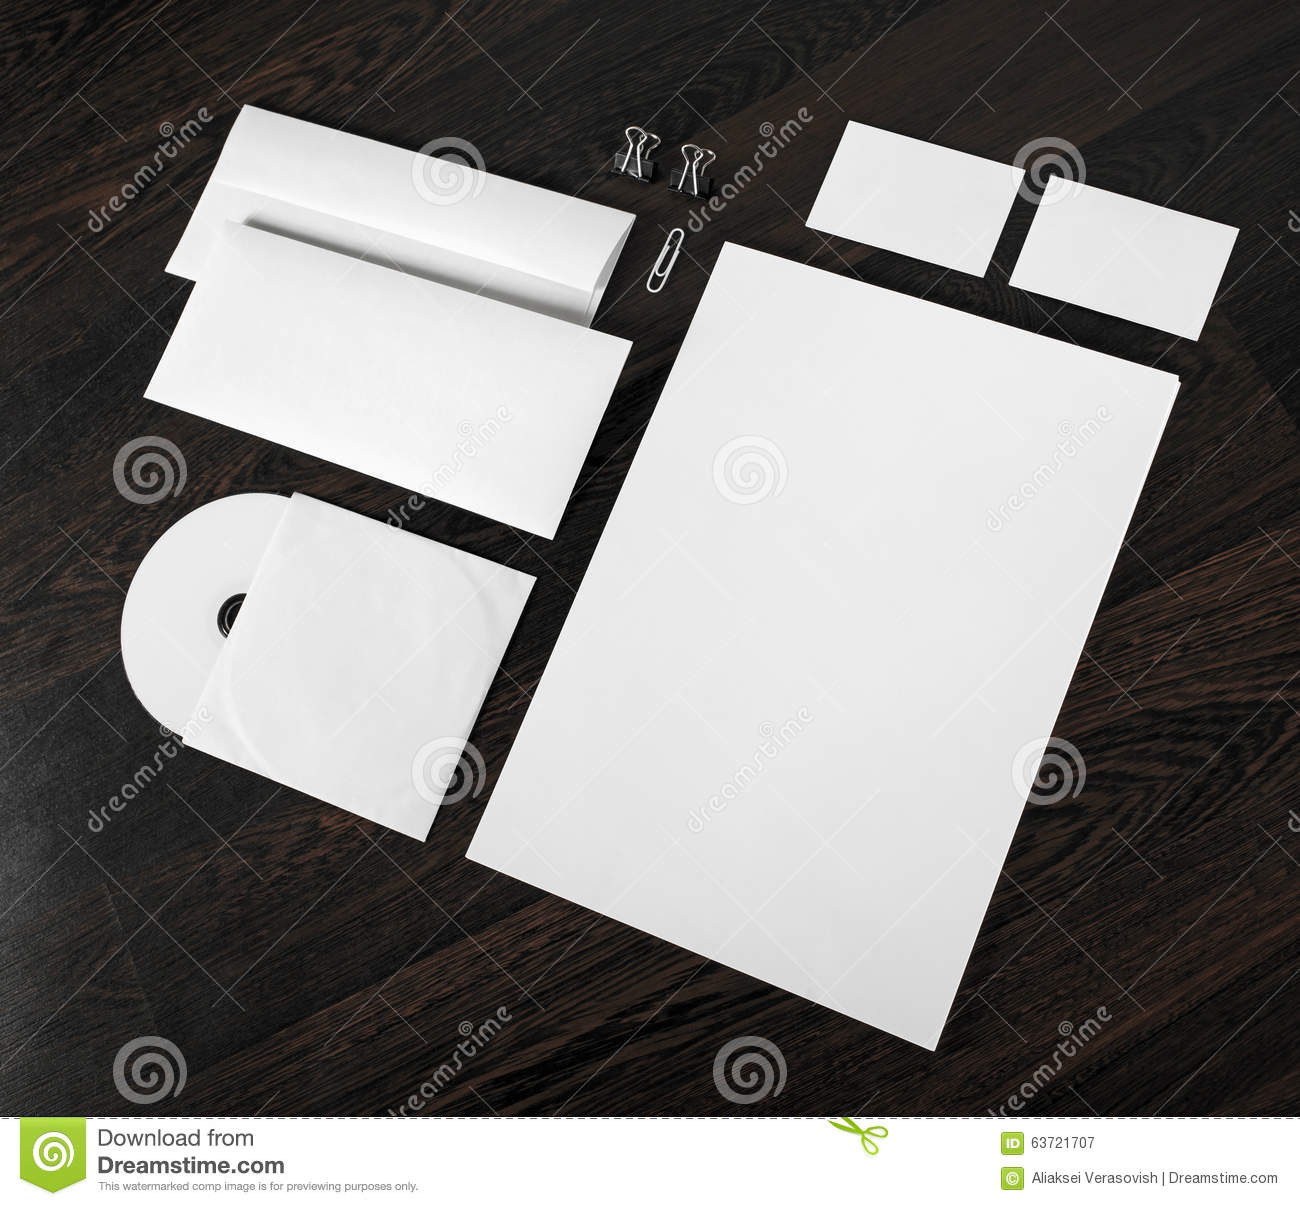 Blank Stationery And Corporate Identity Template Consist: Blank Stationery On Wooden Background Stock Photo